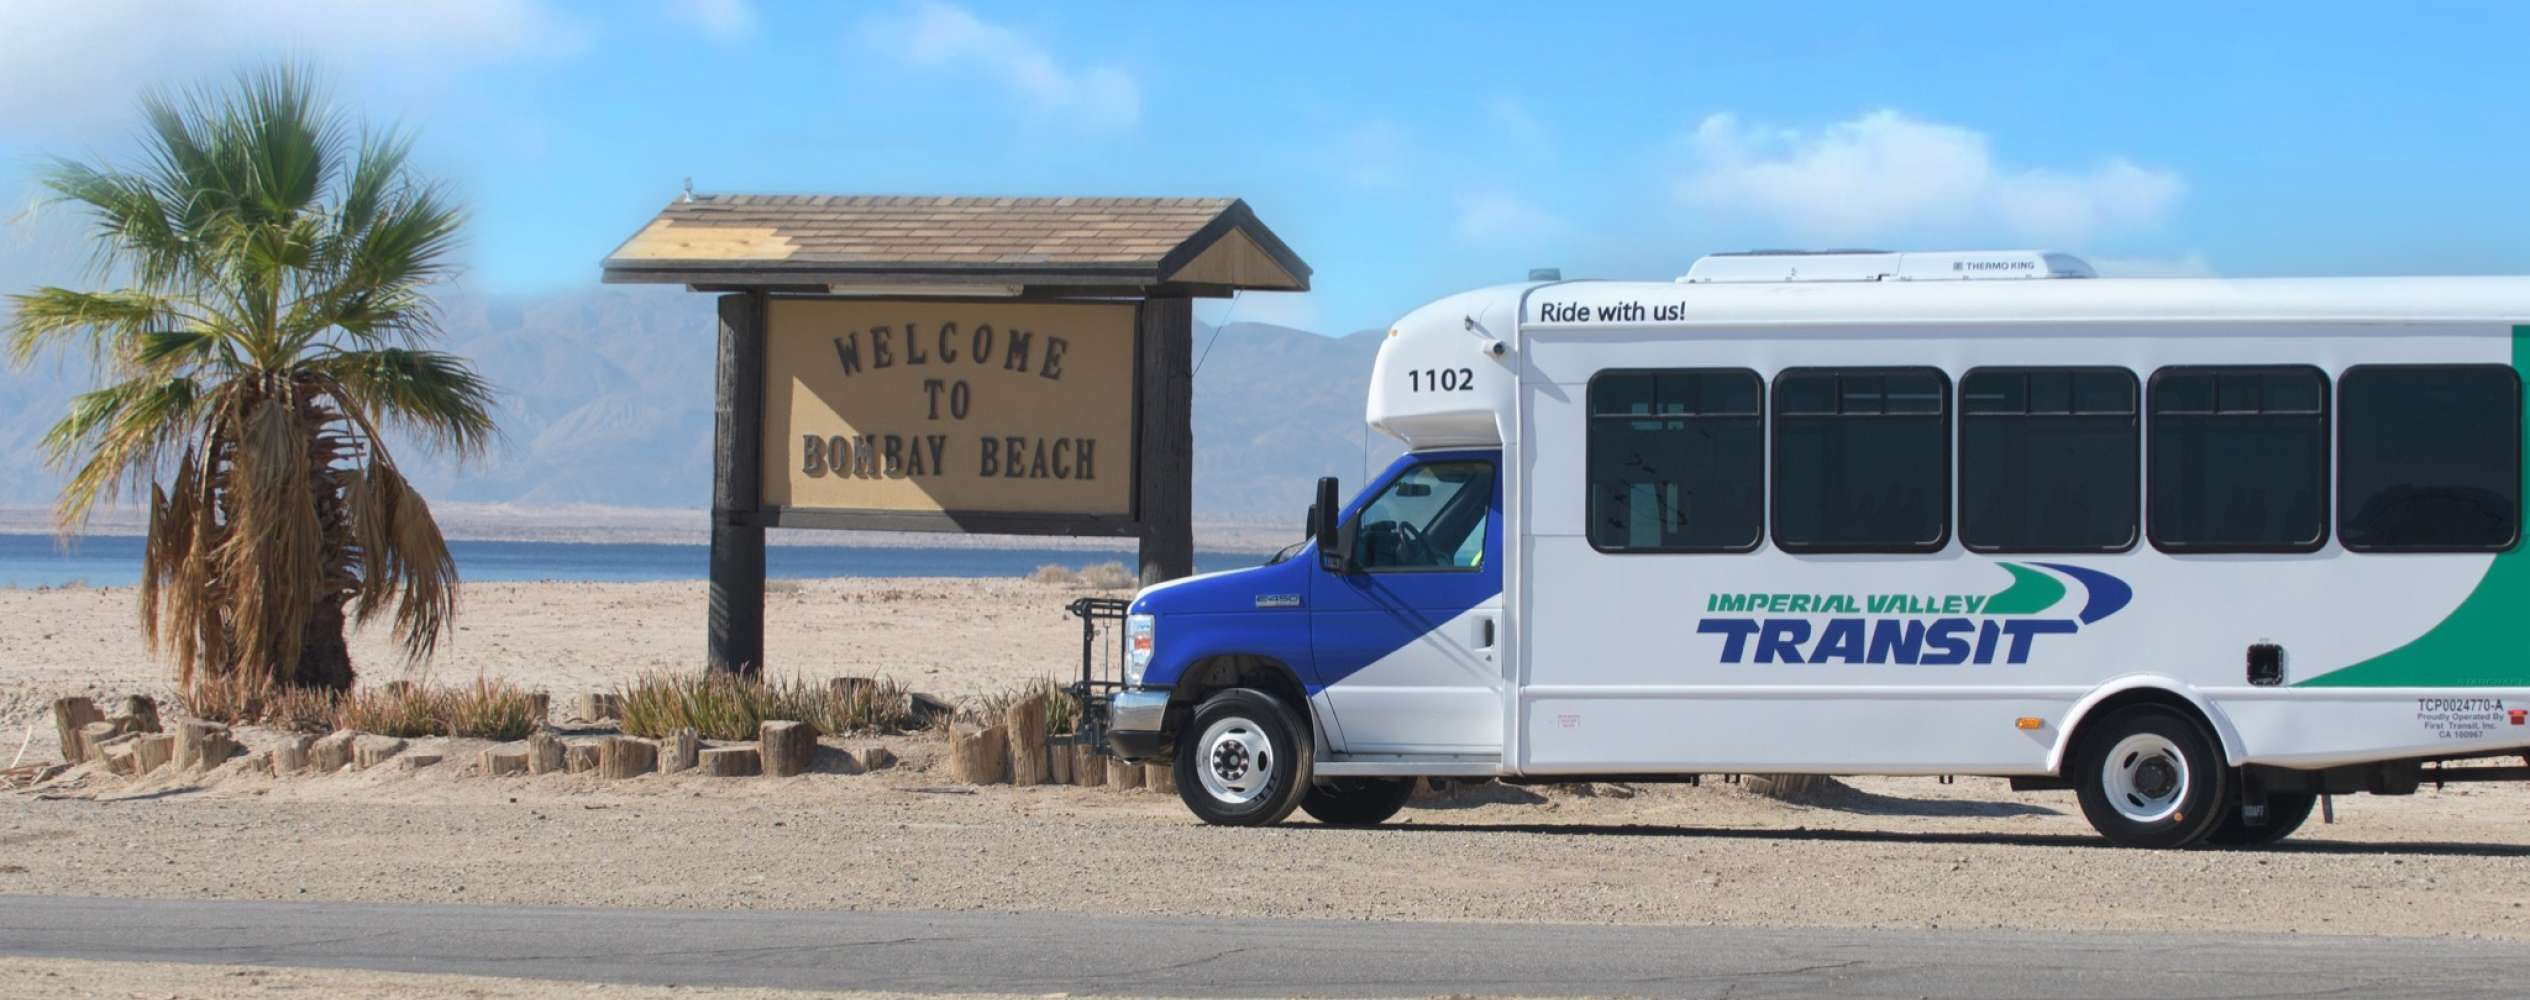 Bus parked next to 'Welcome to Bombay Beach' sign